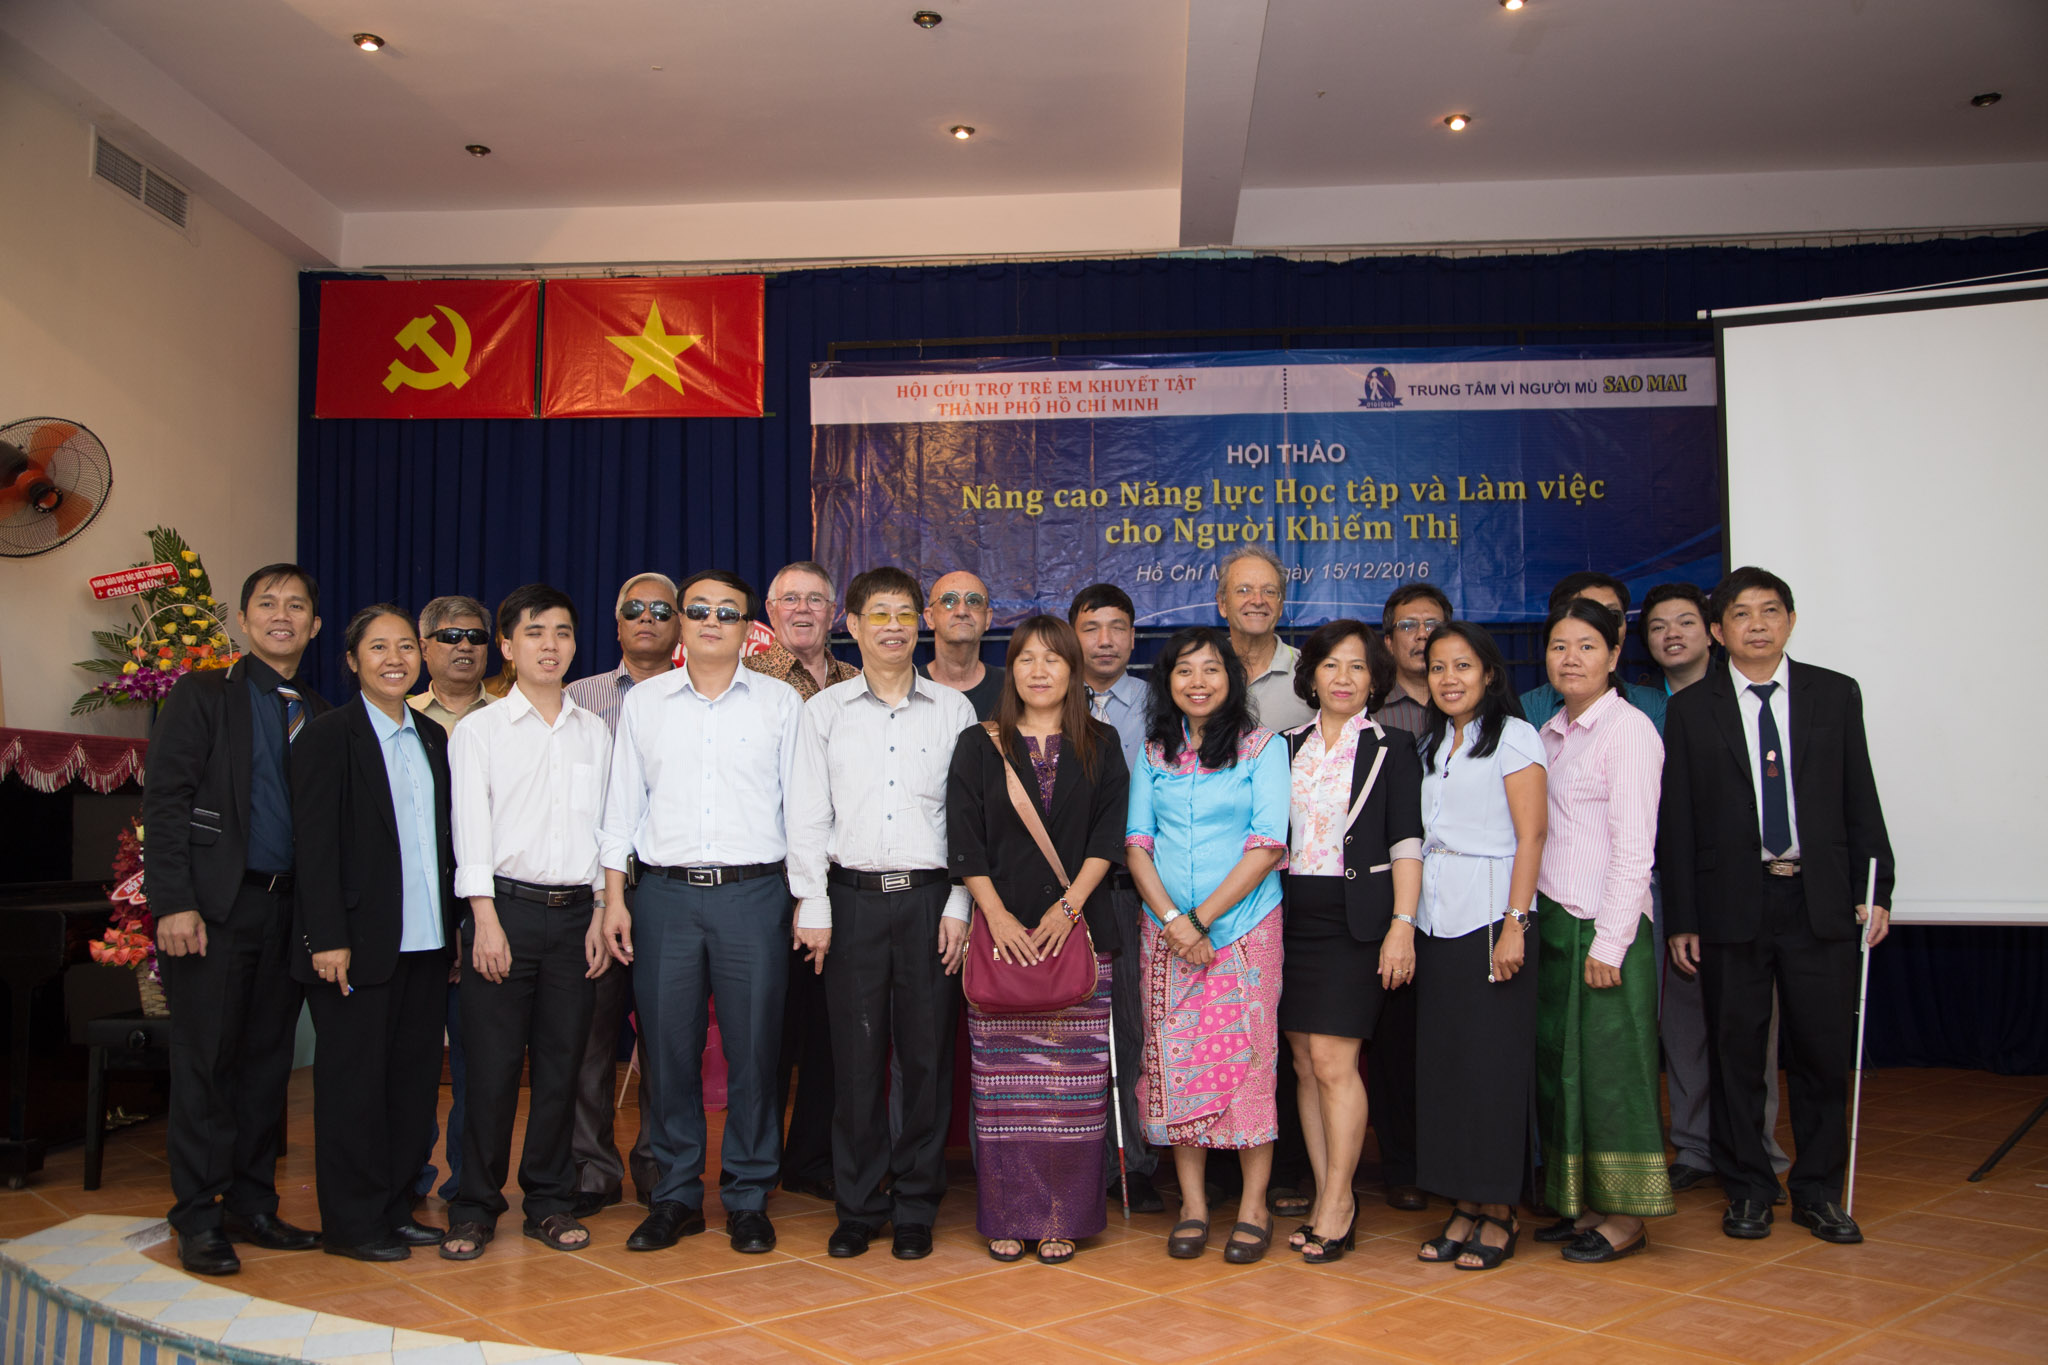 International workshop held on 15 December 2016